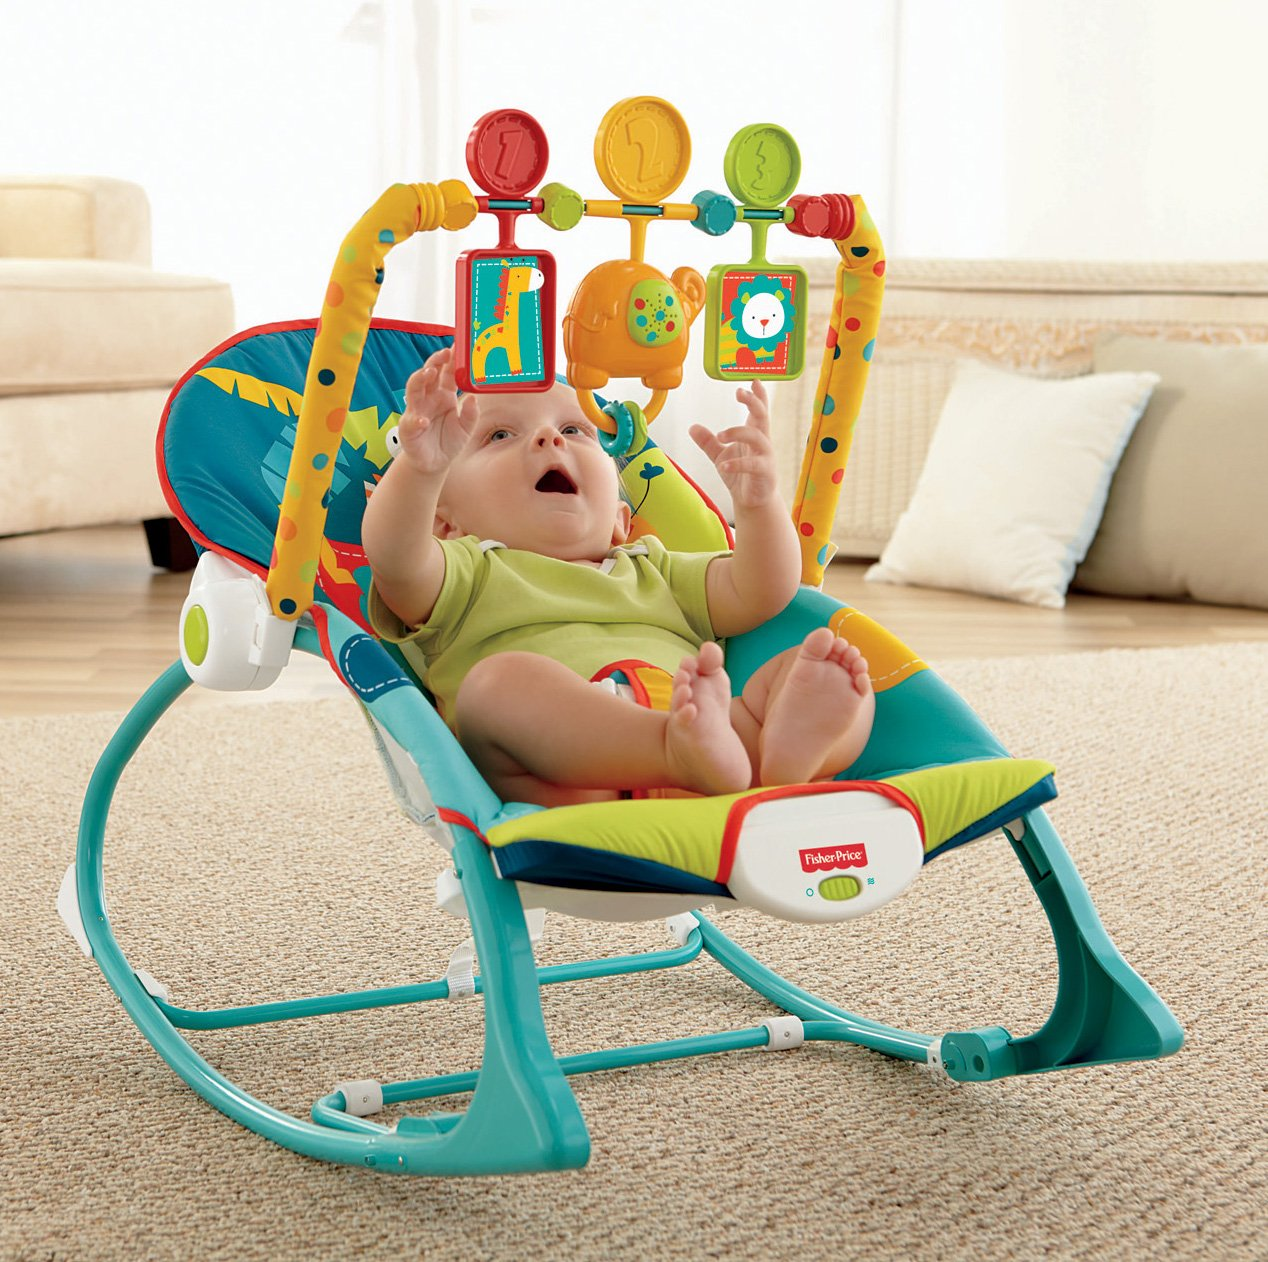 Baby rocking chair fisher price - Amazon Com Fisher Price Infant To Toddler Rocker Dark Safari Infant Bouncers And Rockers Baby